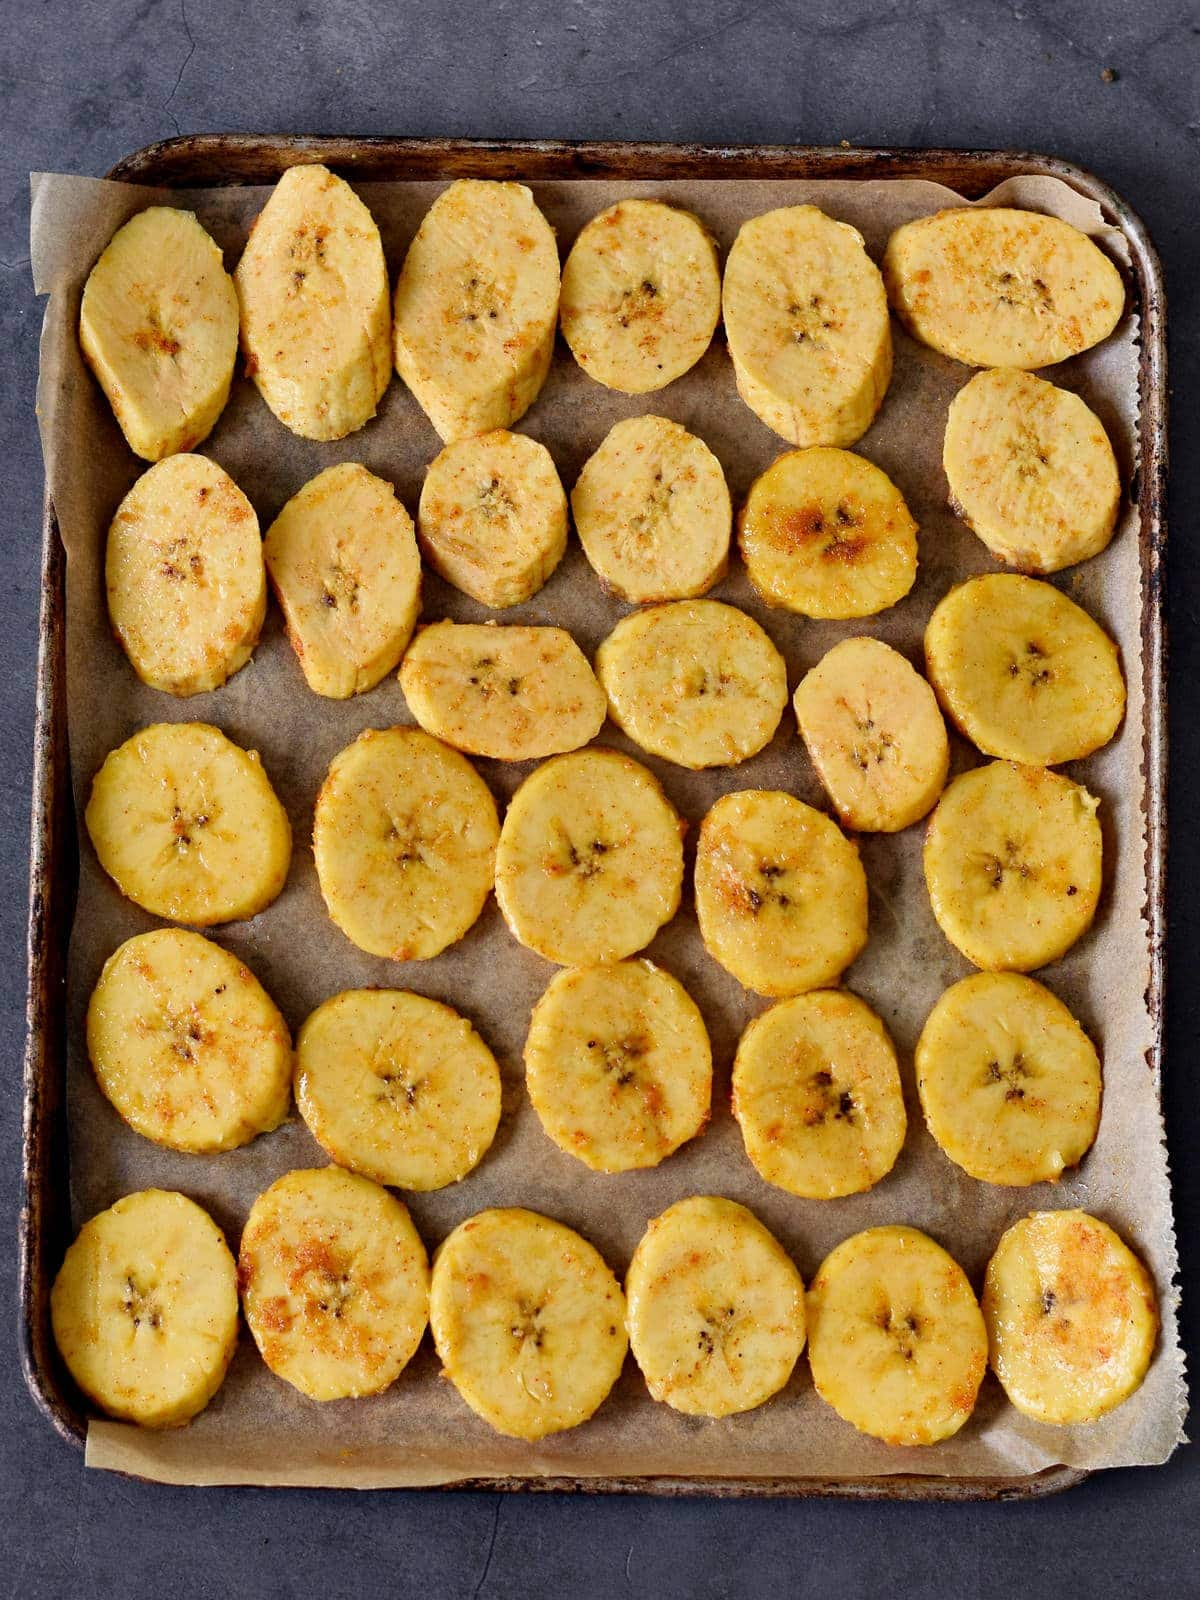 plantain slices before baking